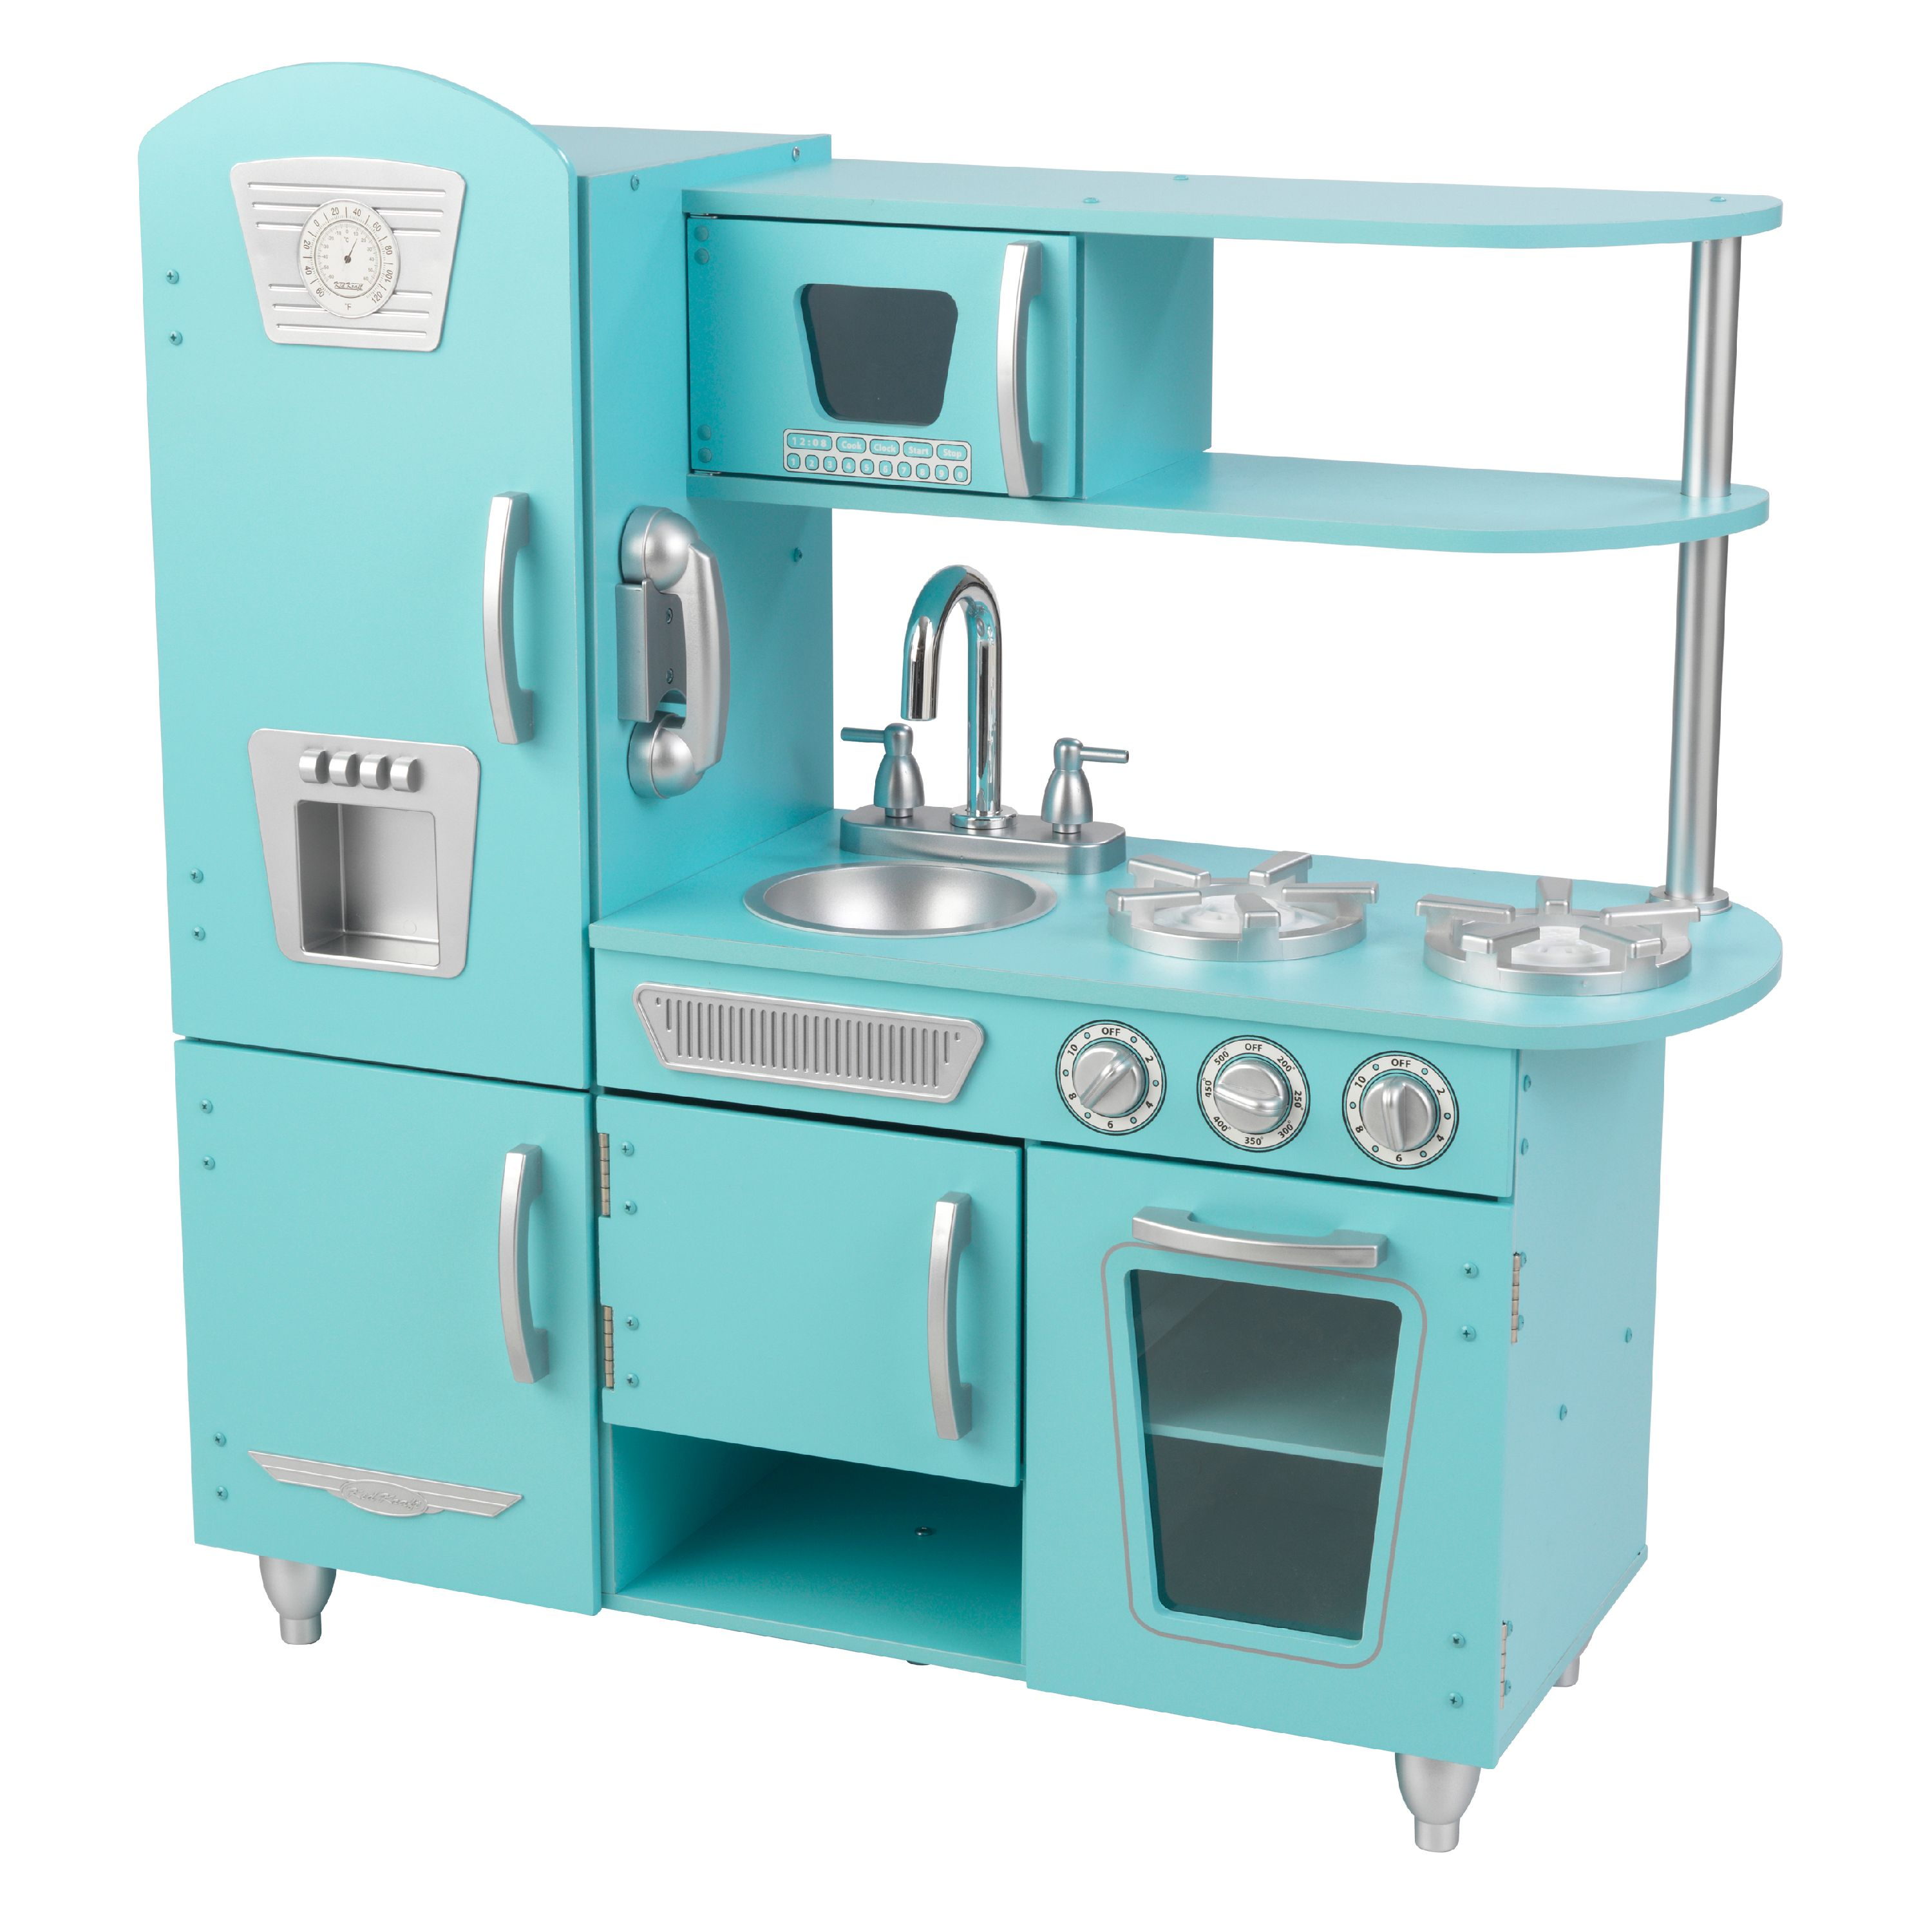 Kidkraft Kitchen kidkraft vintage play kitchen - blue - walmart